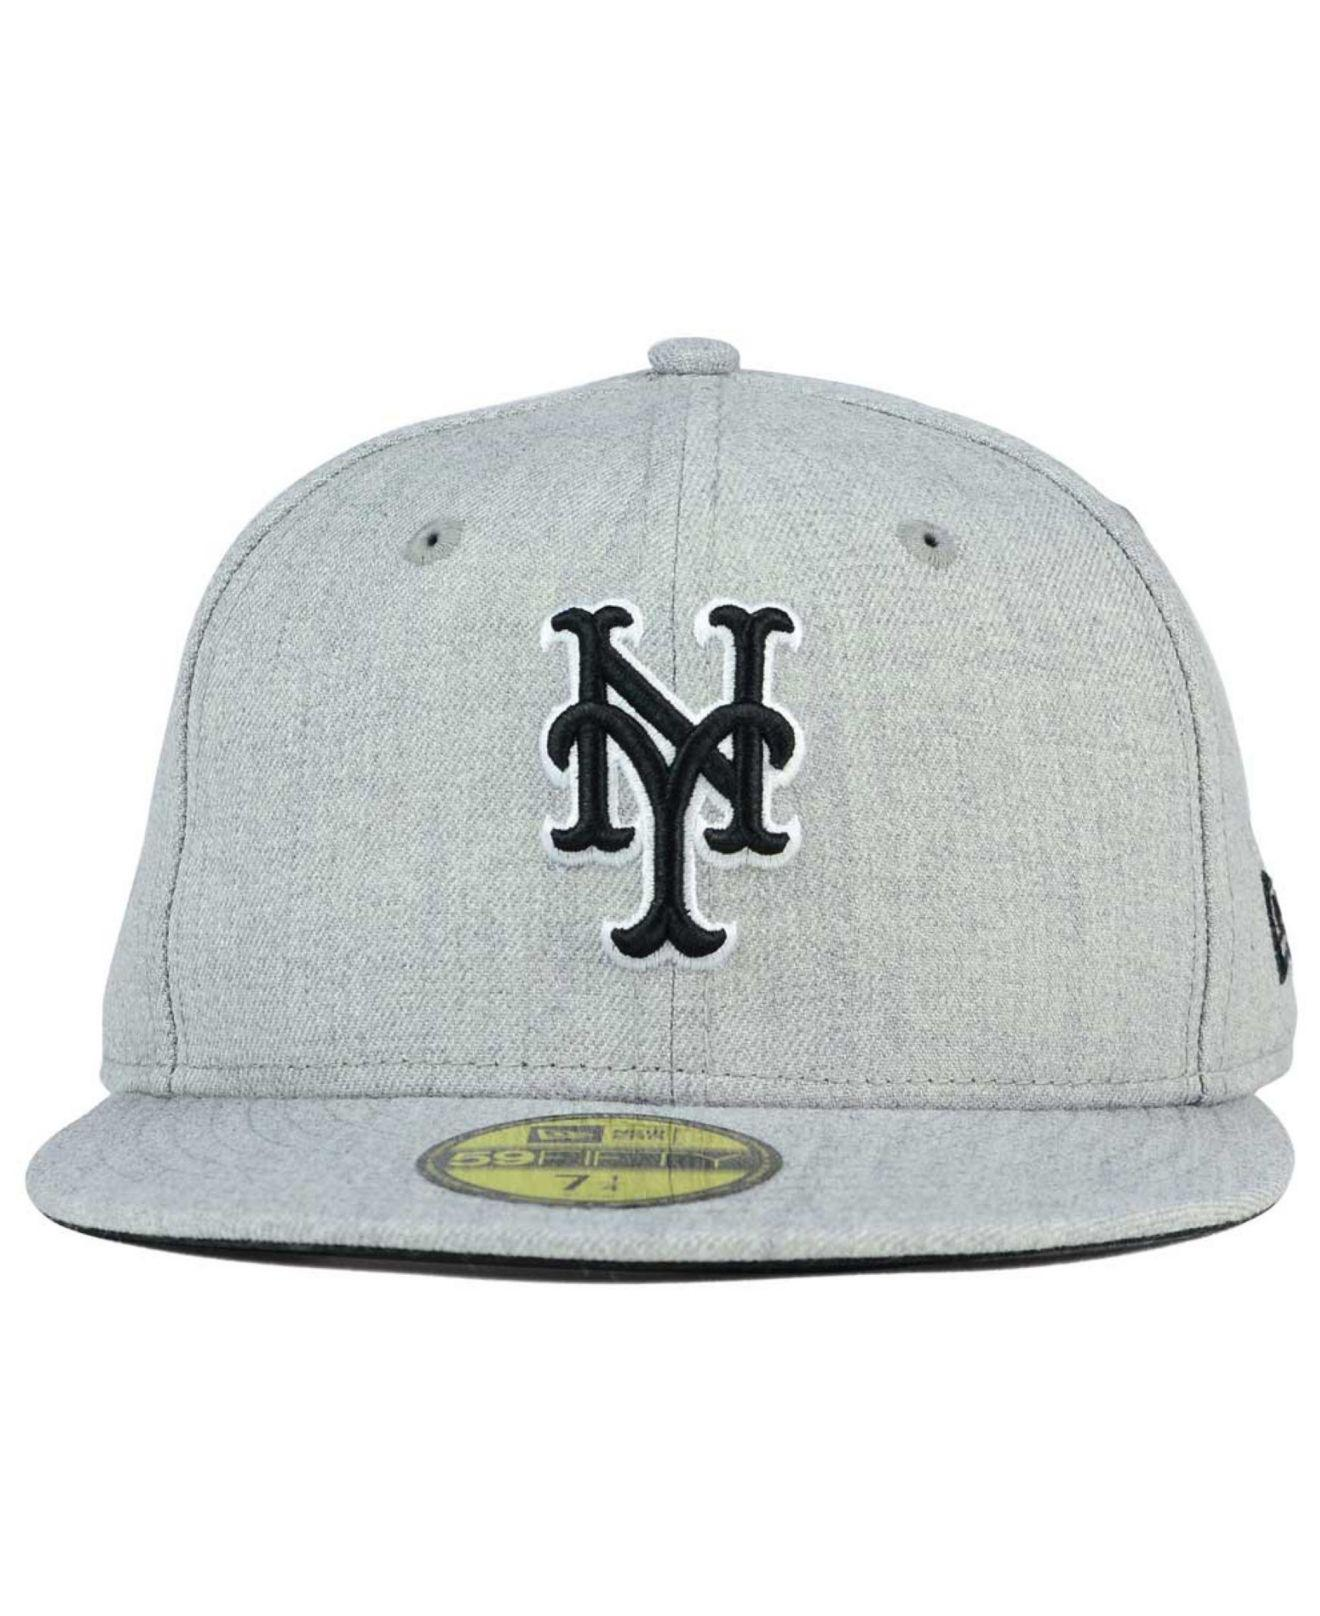 100% authentic df85e 05225 ... australia lyst ktz new york mets heather black white 59fifty cap in  gray for men fd5ec